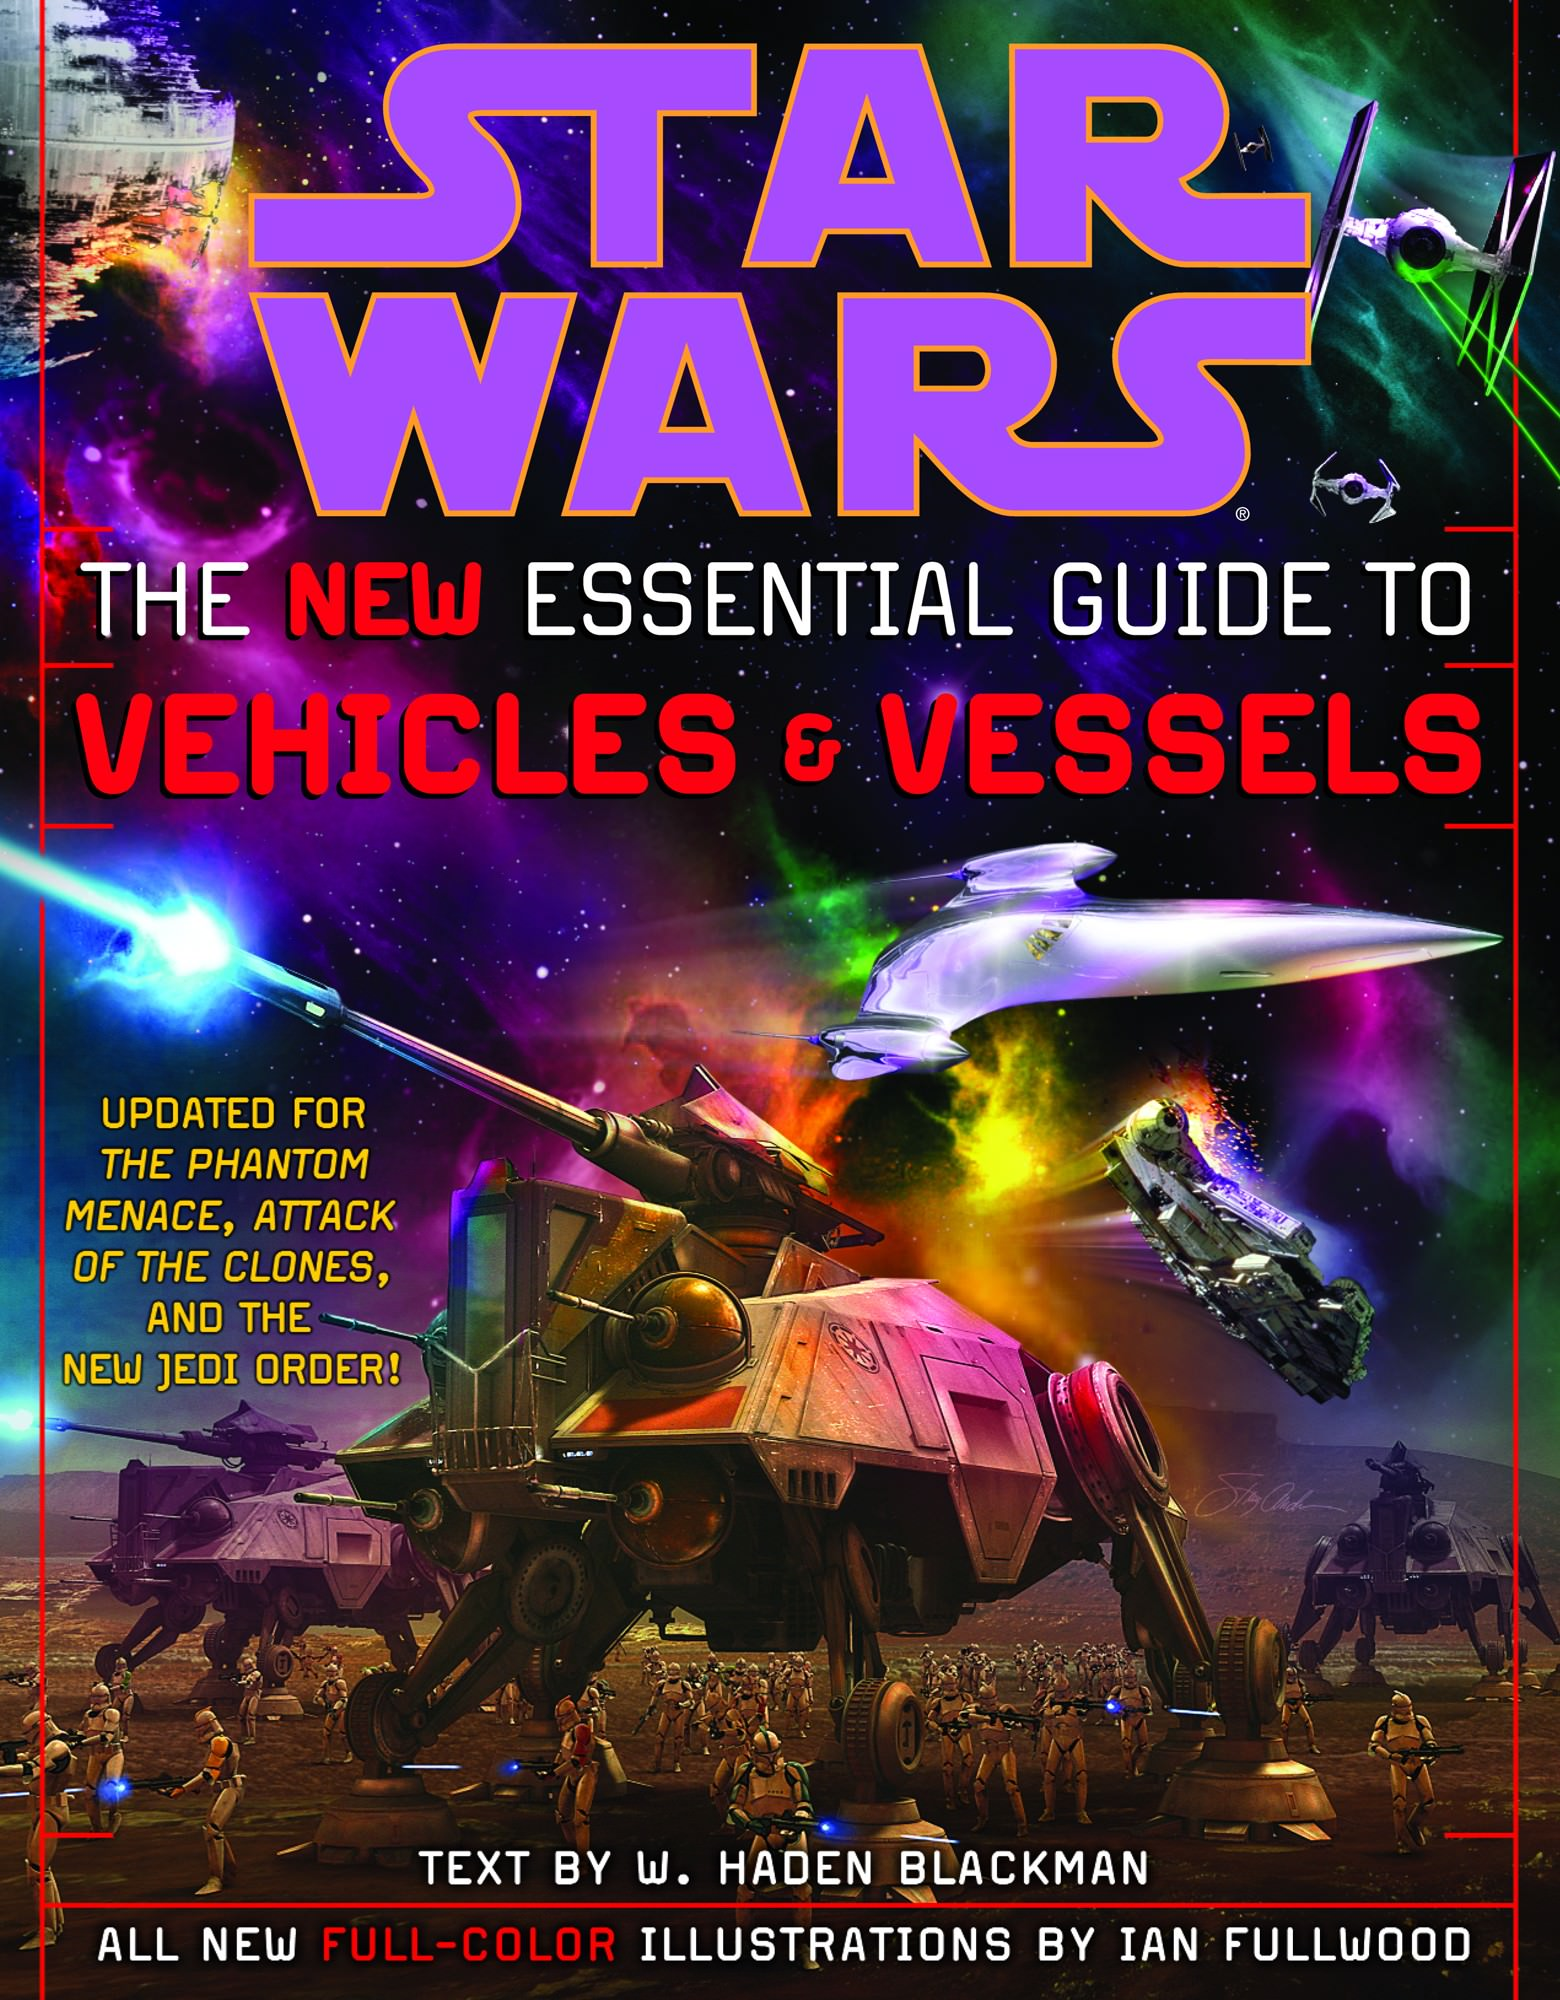 Star Wars: The Essential Guide to Vehciles and Vessels